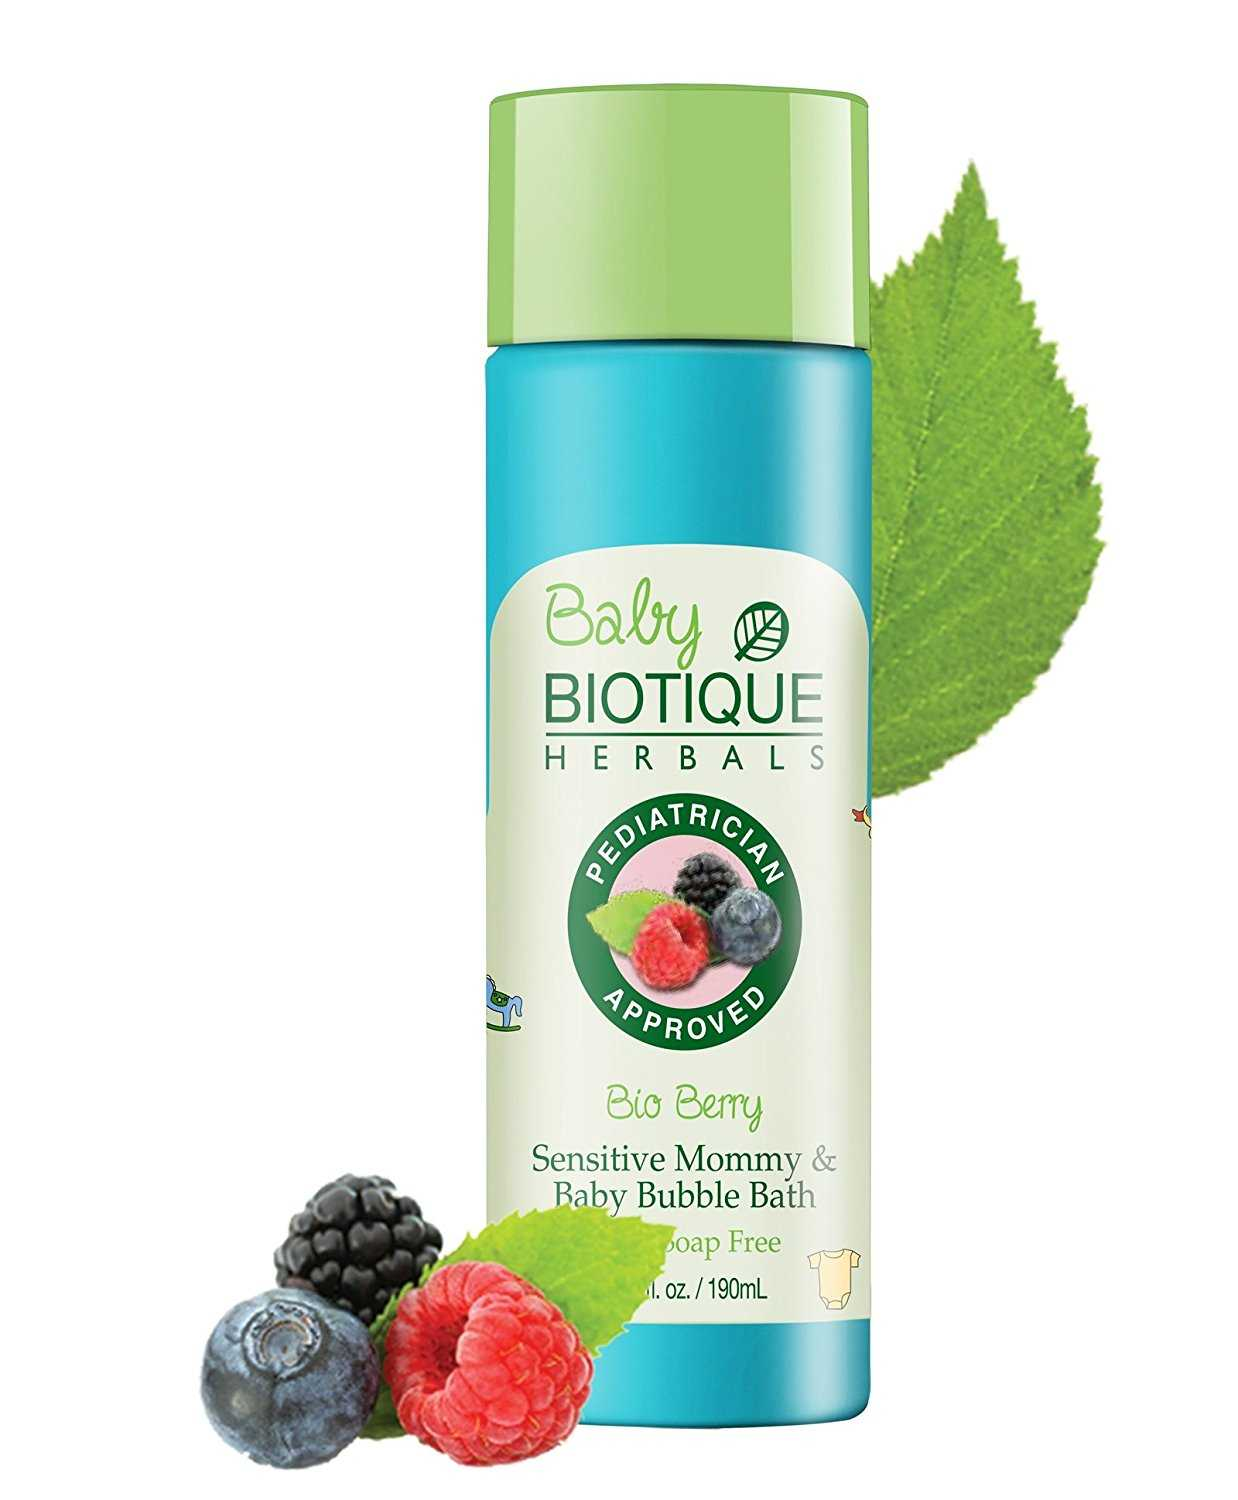 Buy Biotique Bio Berry Sensitive Mommy and Baby Bubble Bath Online MY